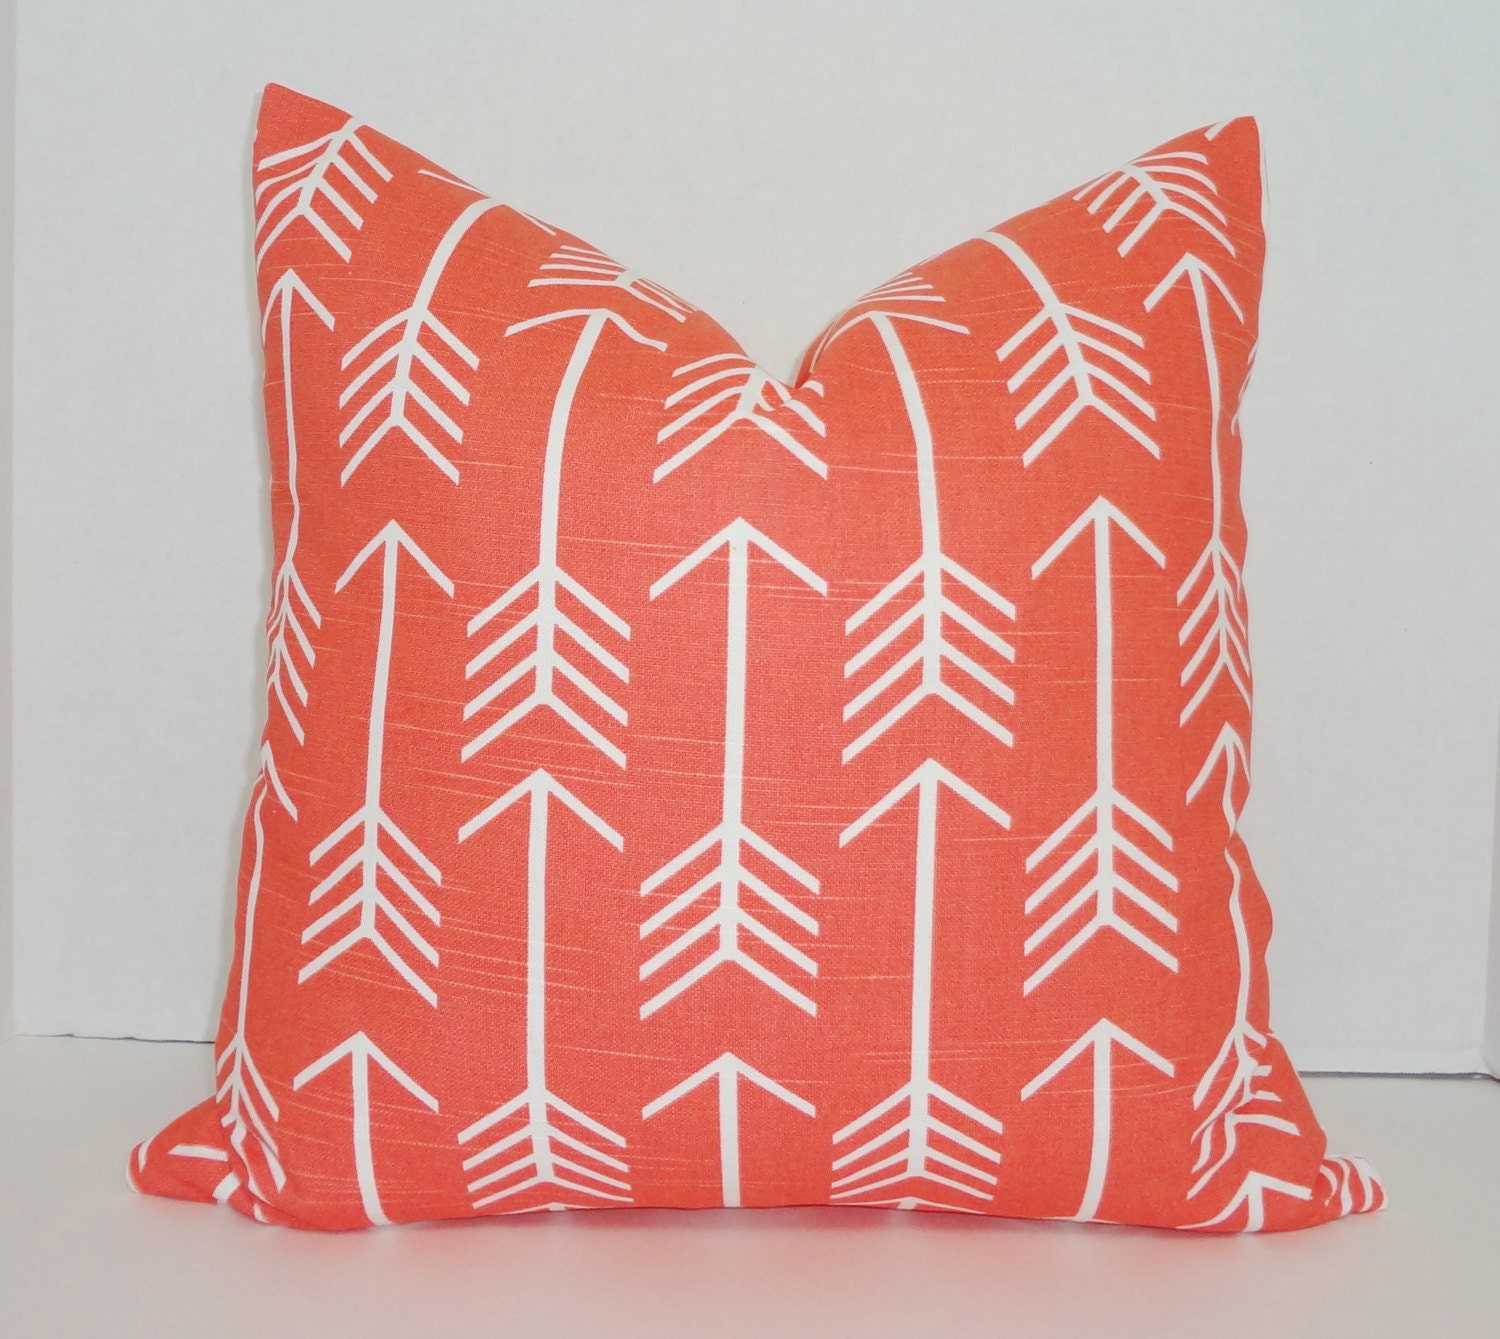 Decorative Pillow Covers Overstock : OVERSTOCK SALE Coral White Arrow Print Decorative Pillow Cover